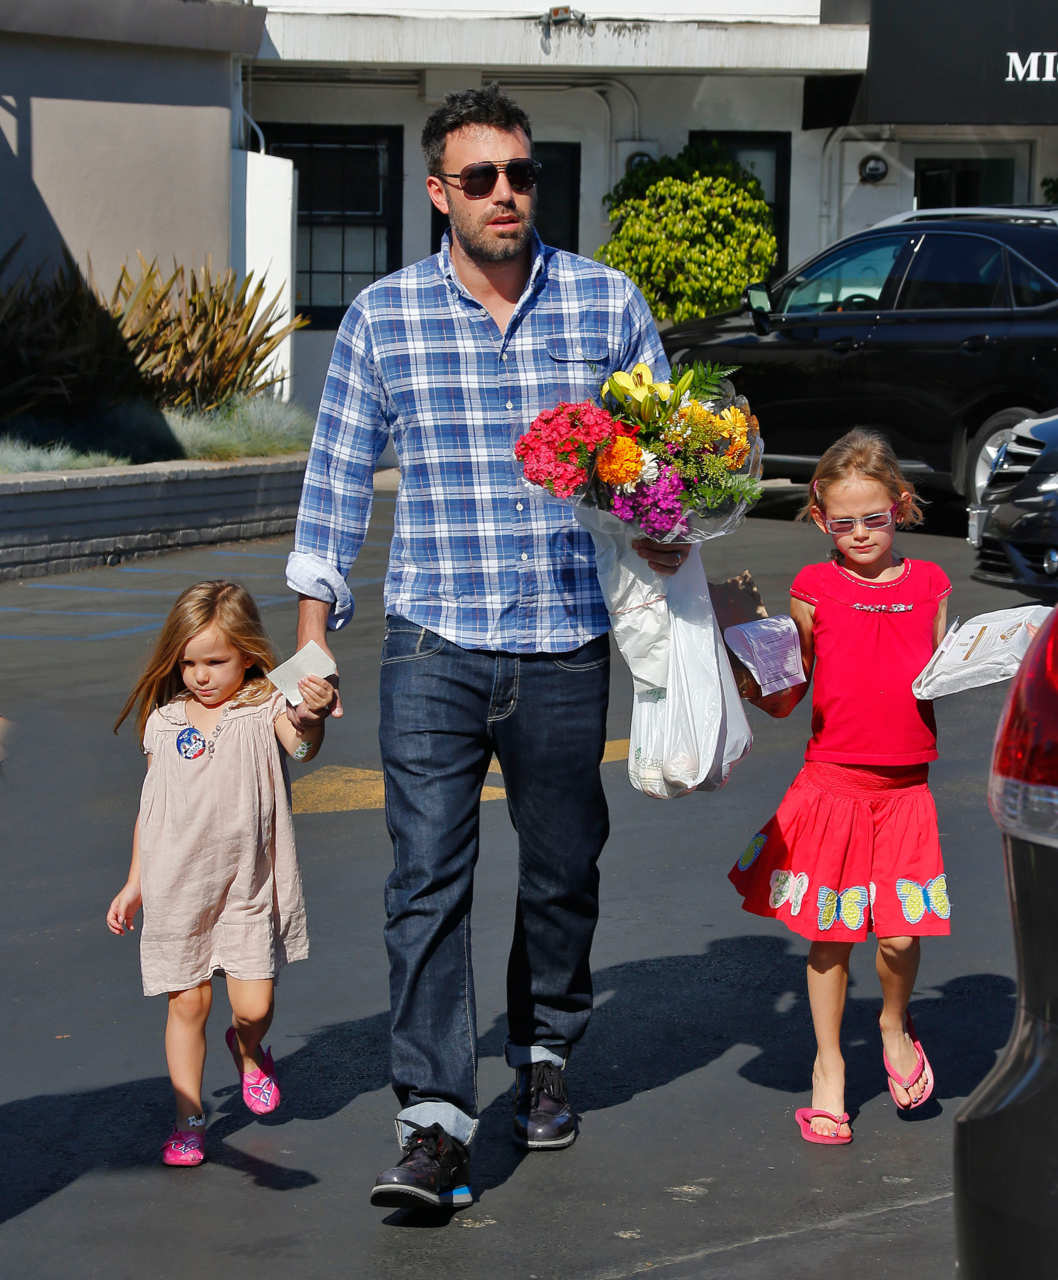 While Jennifer Garner visits the nail salon, Ben Affleck takes Violet and Seraphina to the market in Brentwood, CA.